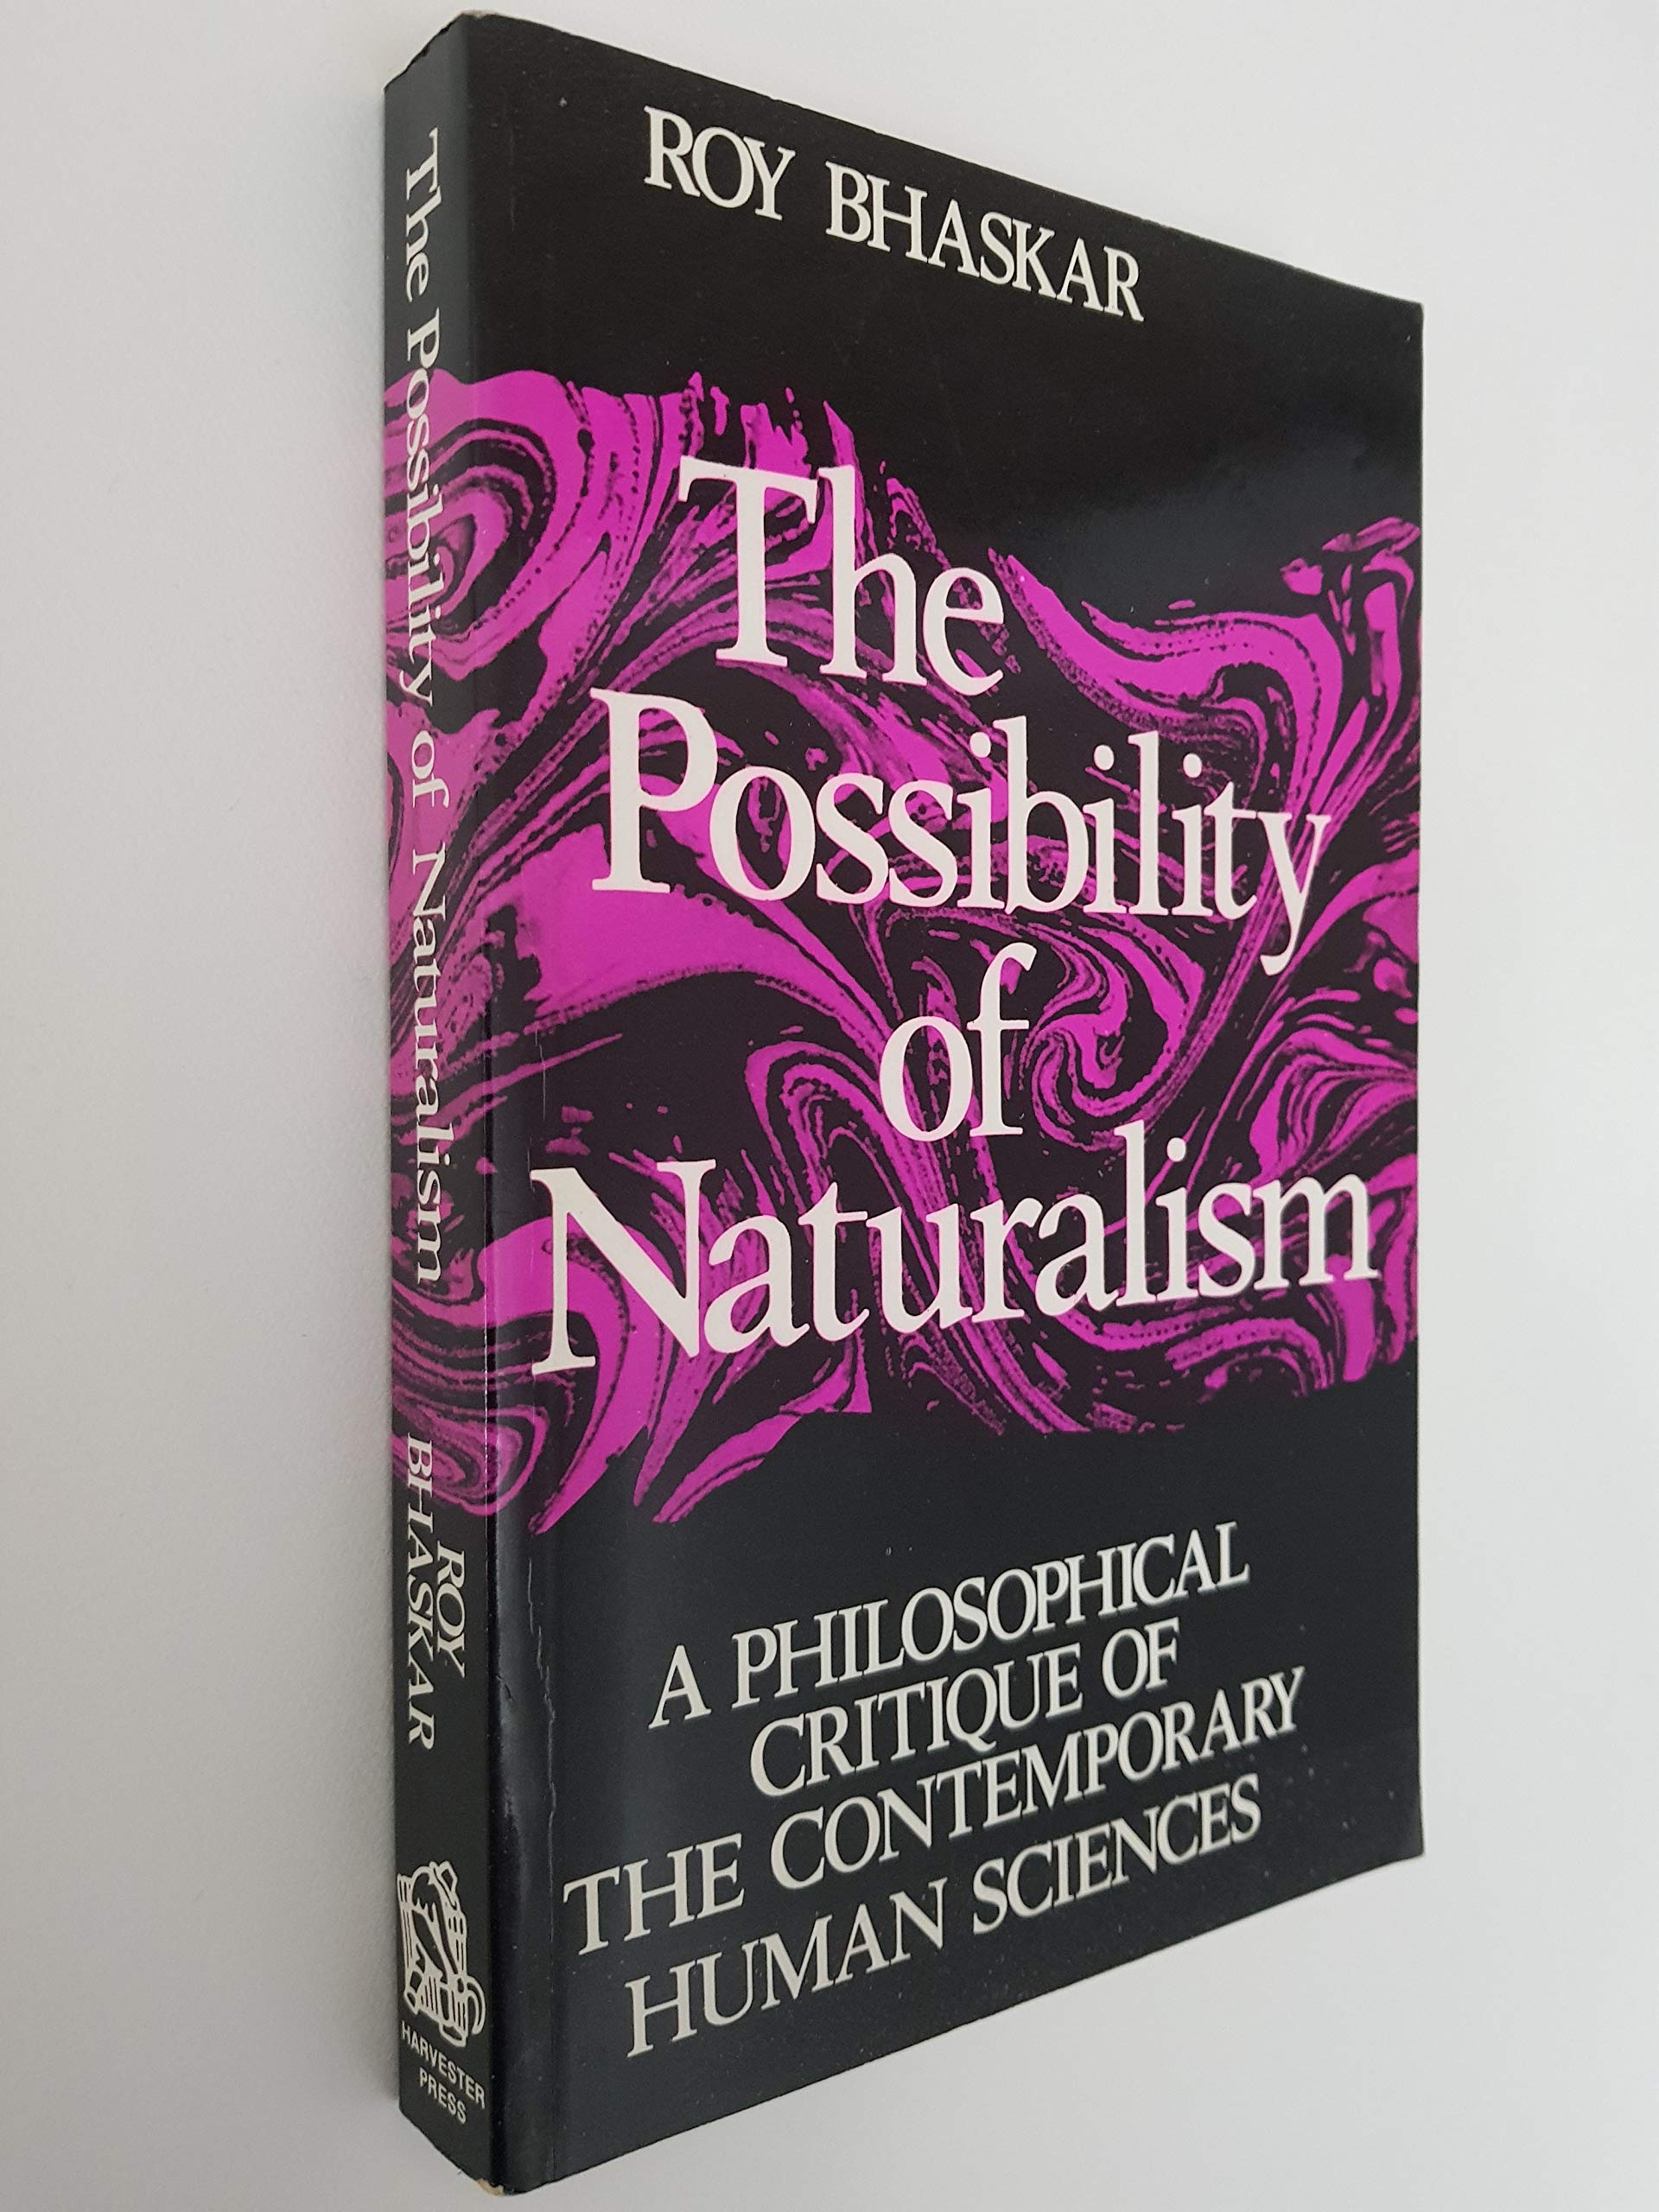 Amazon.in: Buy Possibility of Naturalism: v. 1: Philosophical Critique of  the Contemporary Human Sciences Book Online at Low Prices in India    Possibility of Naturalism: v. 1: Philosophical Critique of the Contemporary